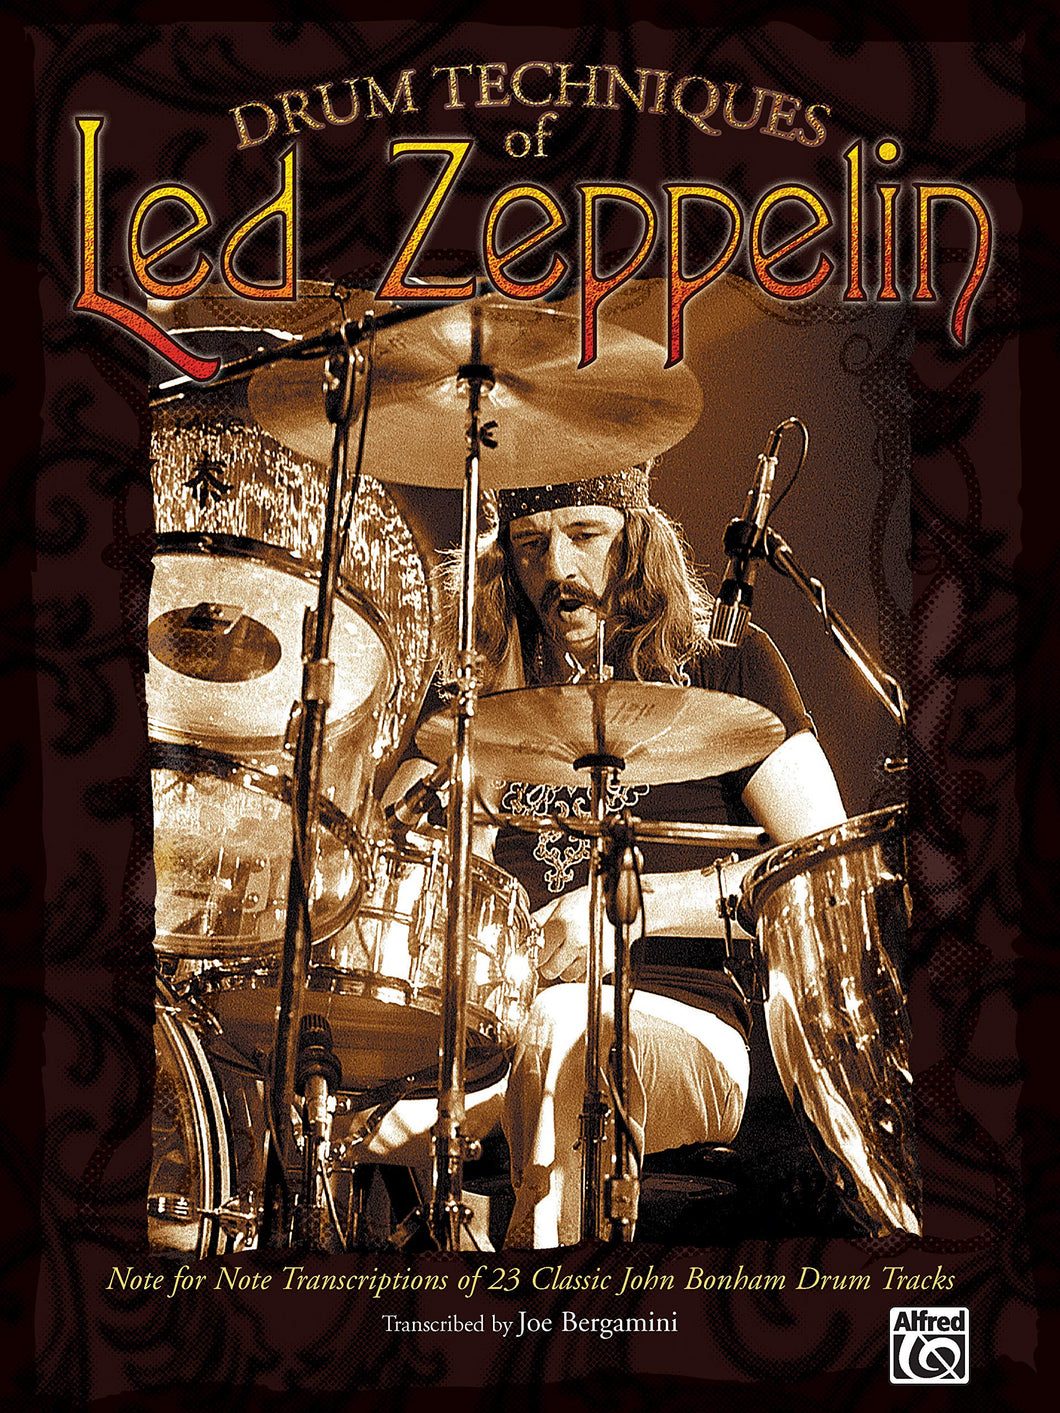 Immigrant Song - Led Zeppelin - Collection of Drum Transcriptions / Drum Sheet Music - Alfred Music DTLZNFNT